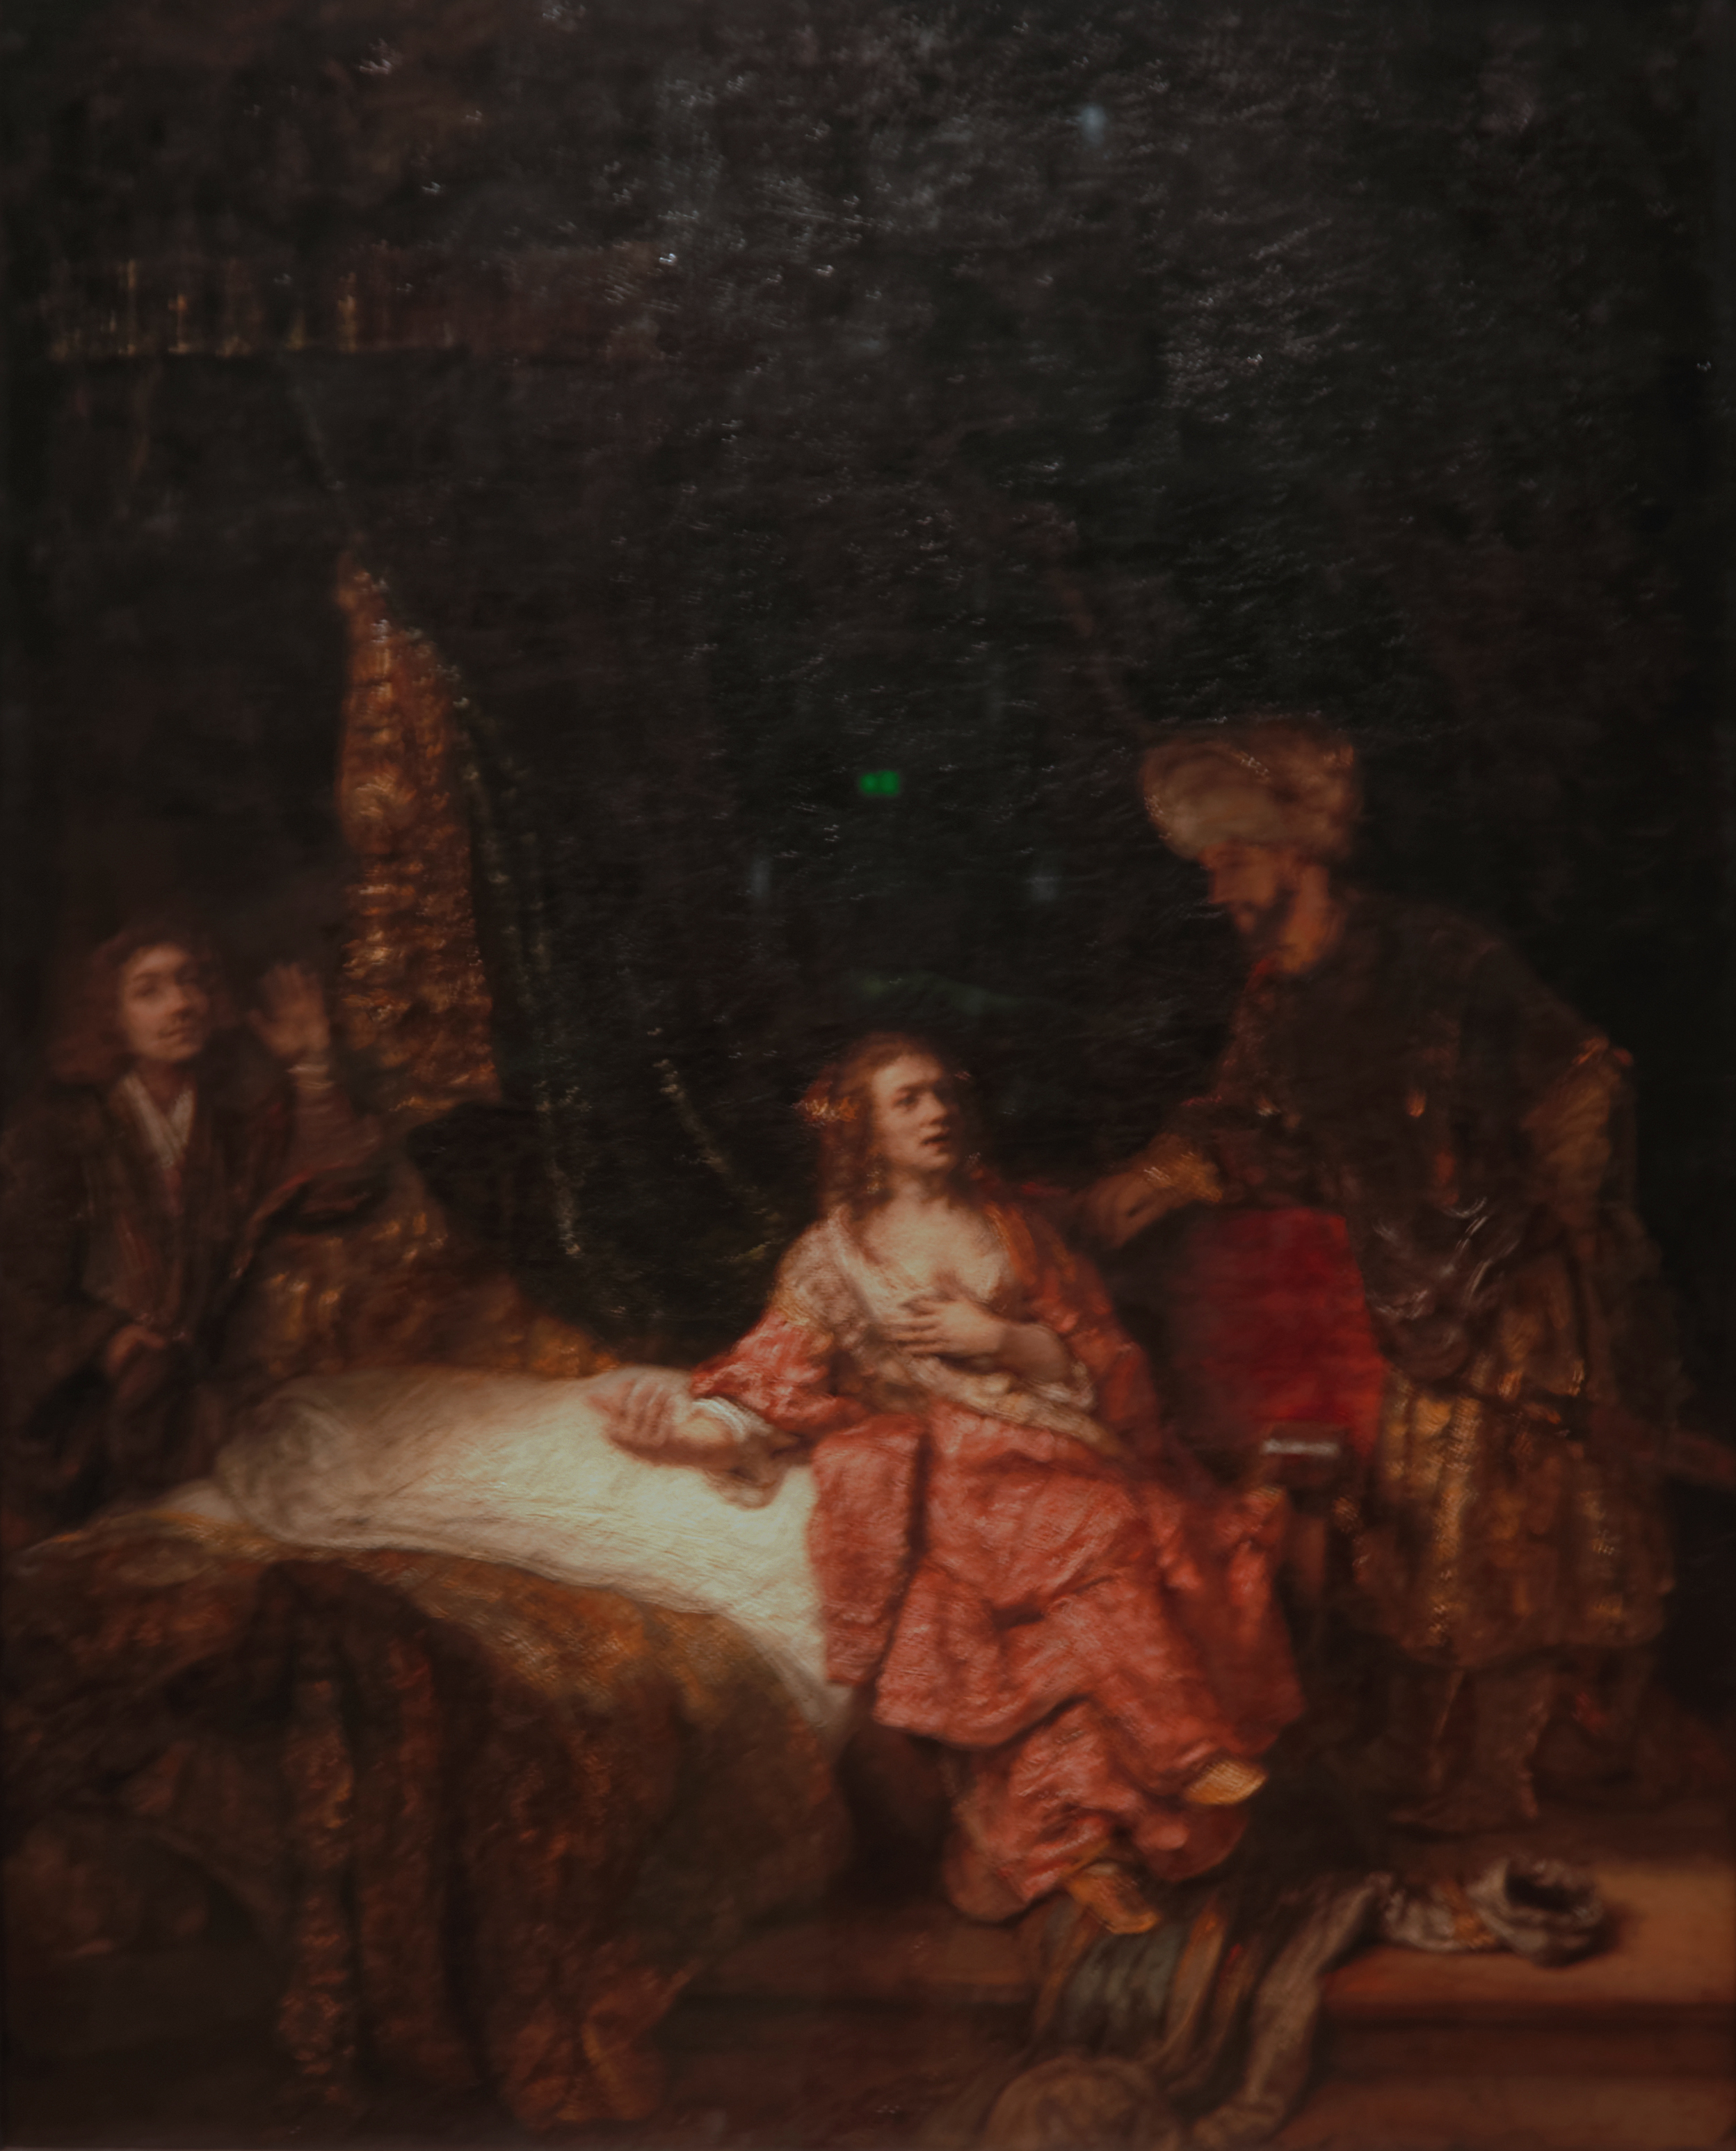 an analysis of the colors of rembrandts joseph accused by potiphars wife Picture and description of a work by rembrandt harmensz van rijn: joseph accused by potiphar's wife (washington) oil on canvas (106 x 98 cm), dated 1655.